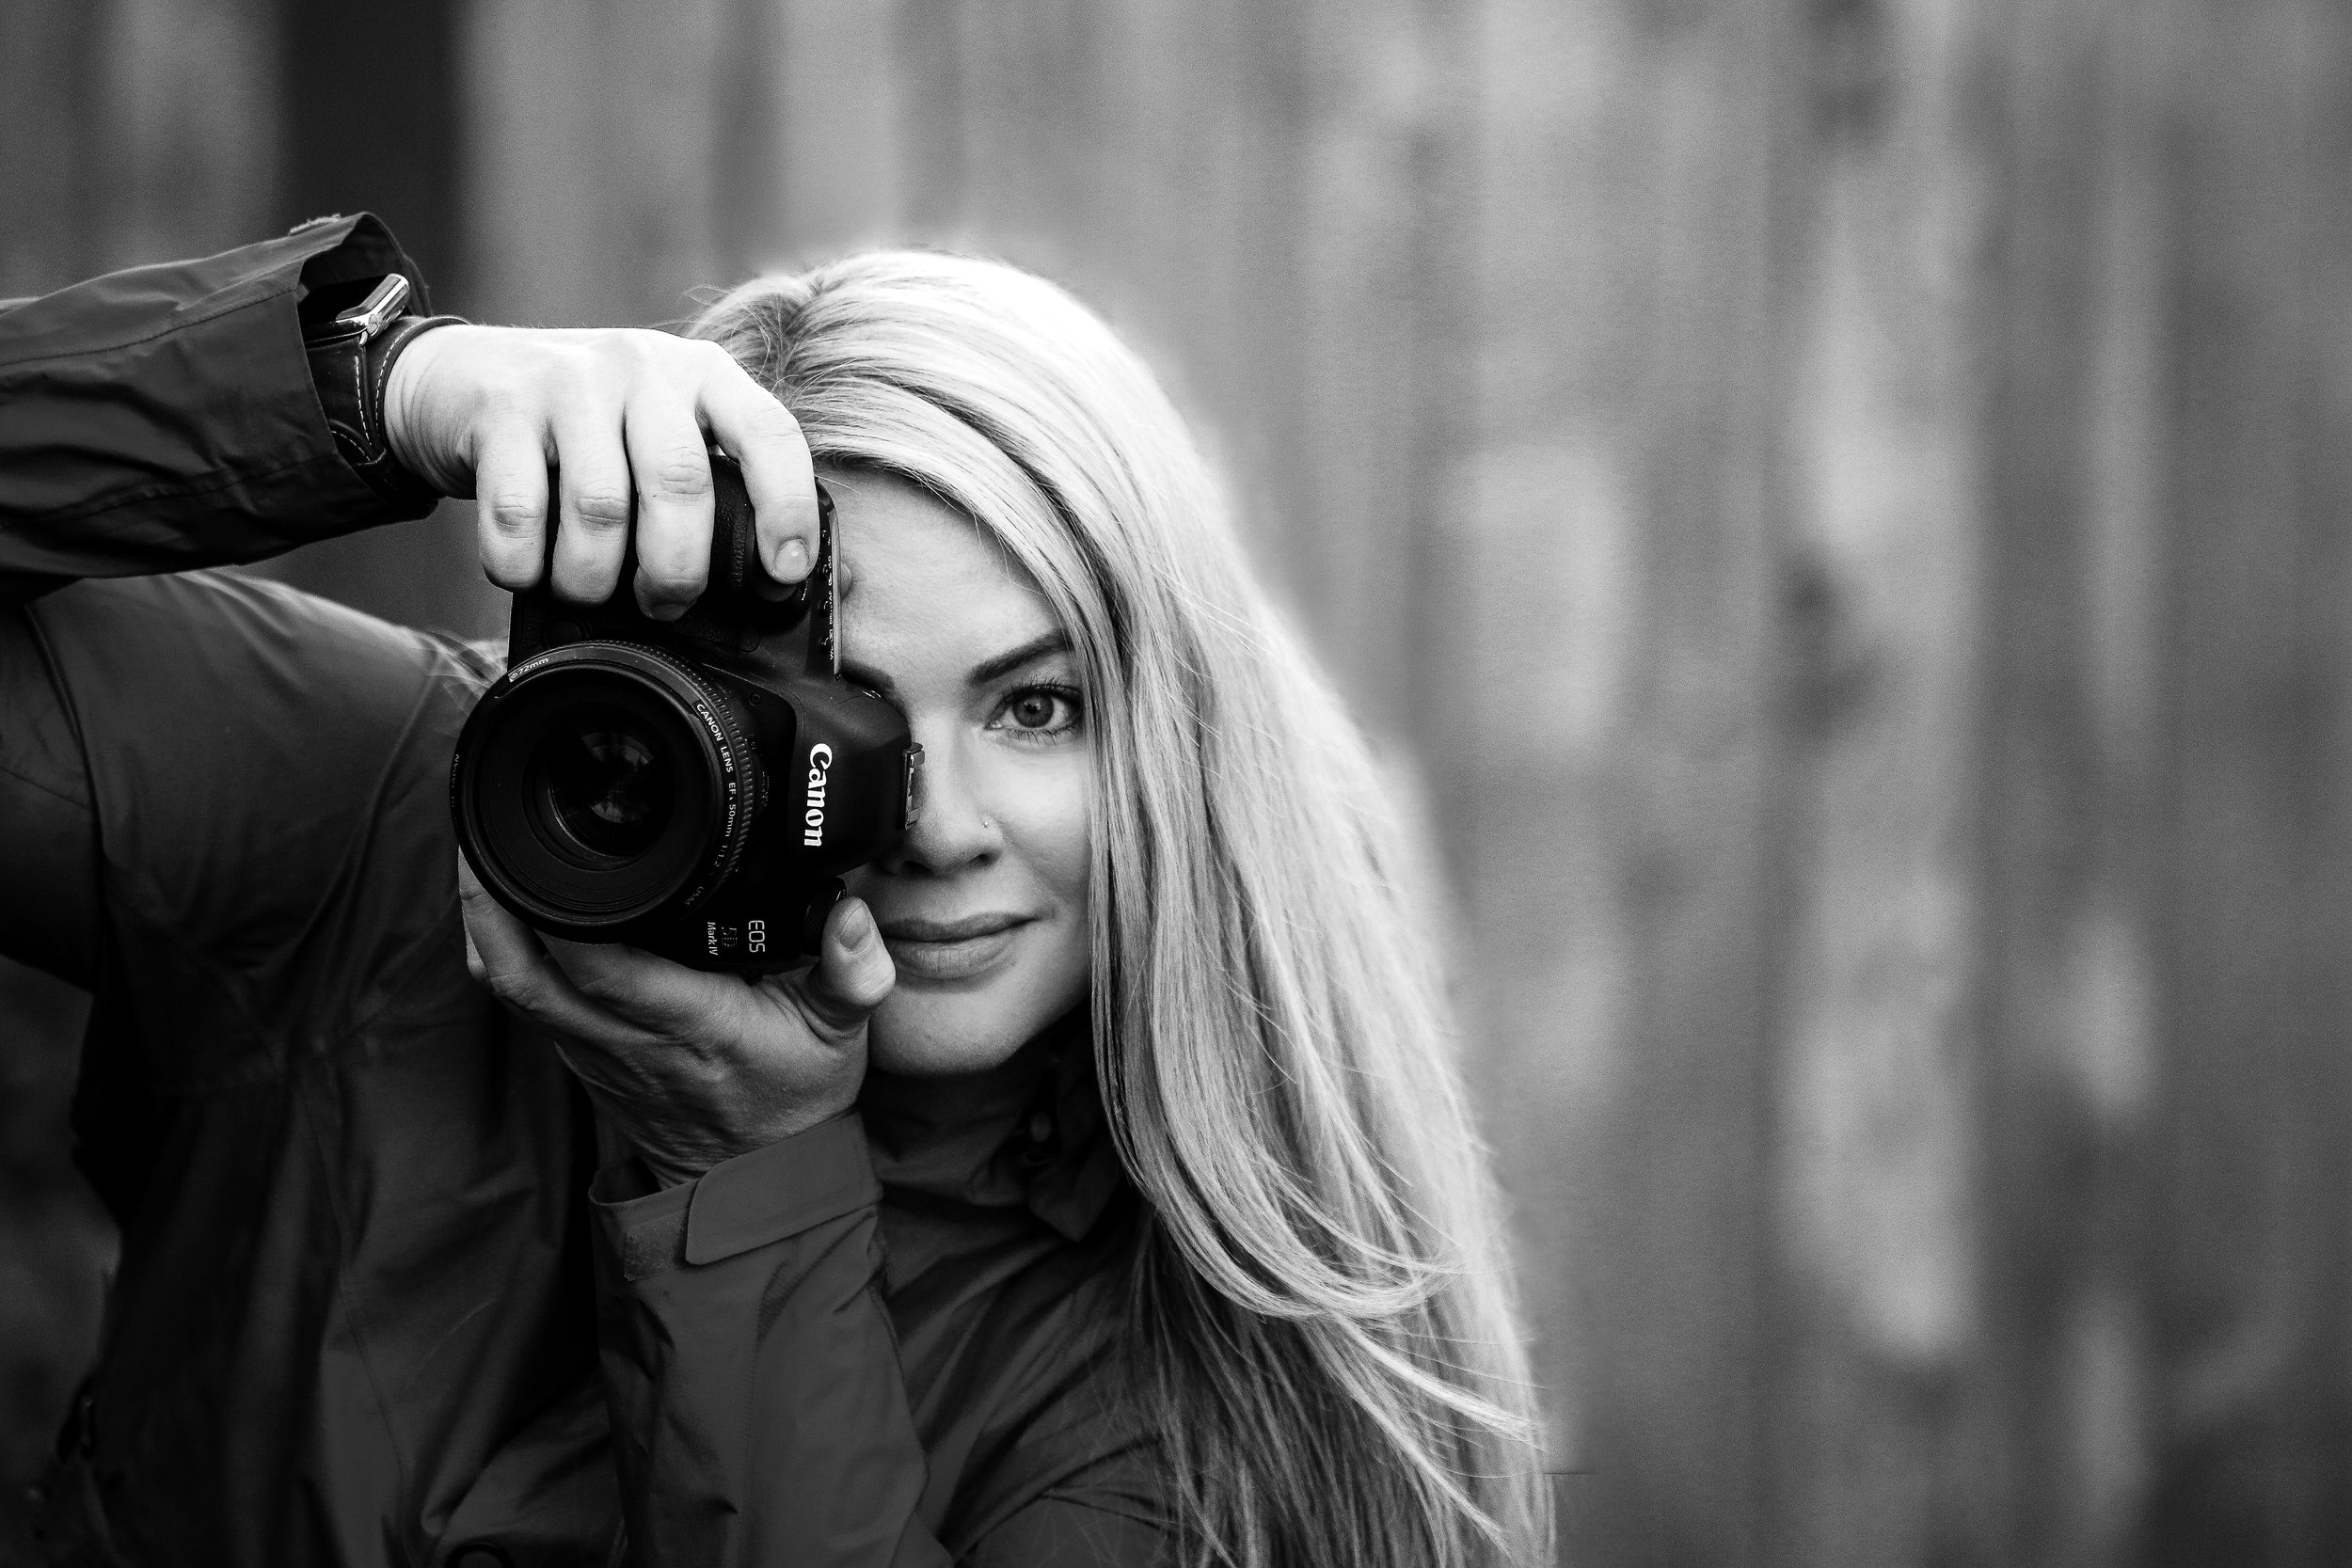 Hi Friend - My name is Haldis! Pacific Northwest Photographer and Filmmaker. Mama to Gunnar and Fina. I live for capturing candid moments. I document and tell stories in the form of images for future generations to come.